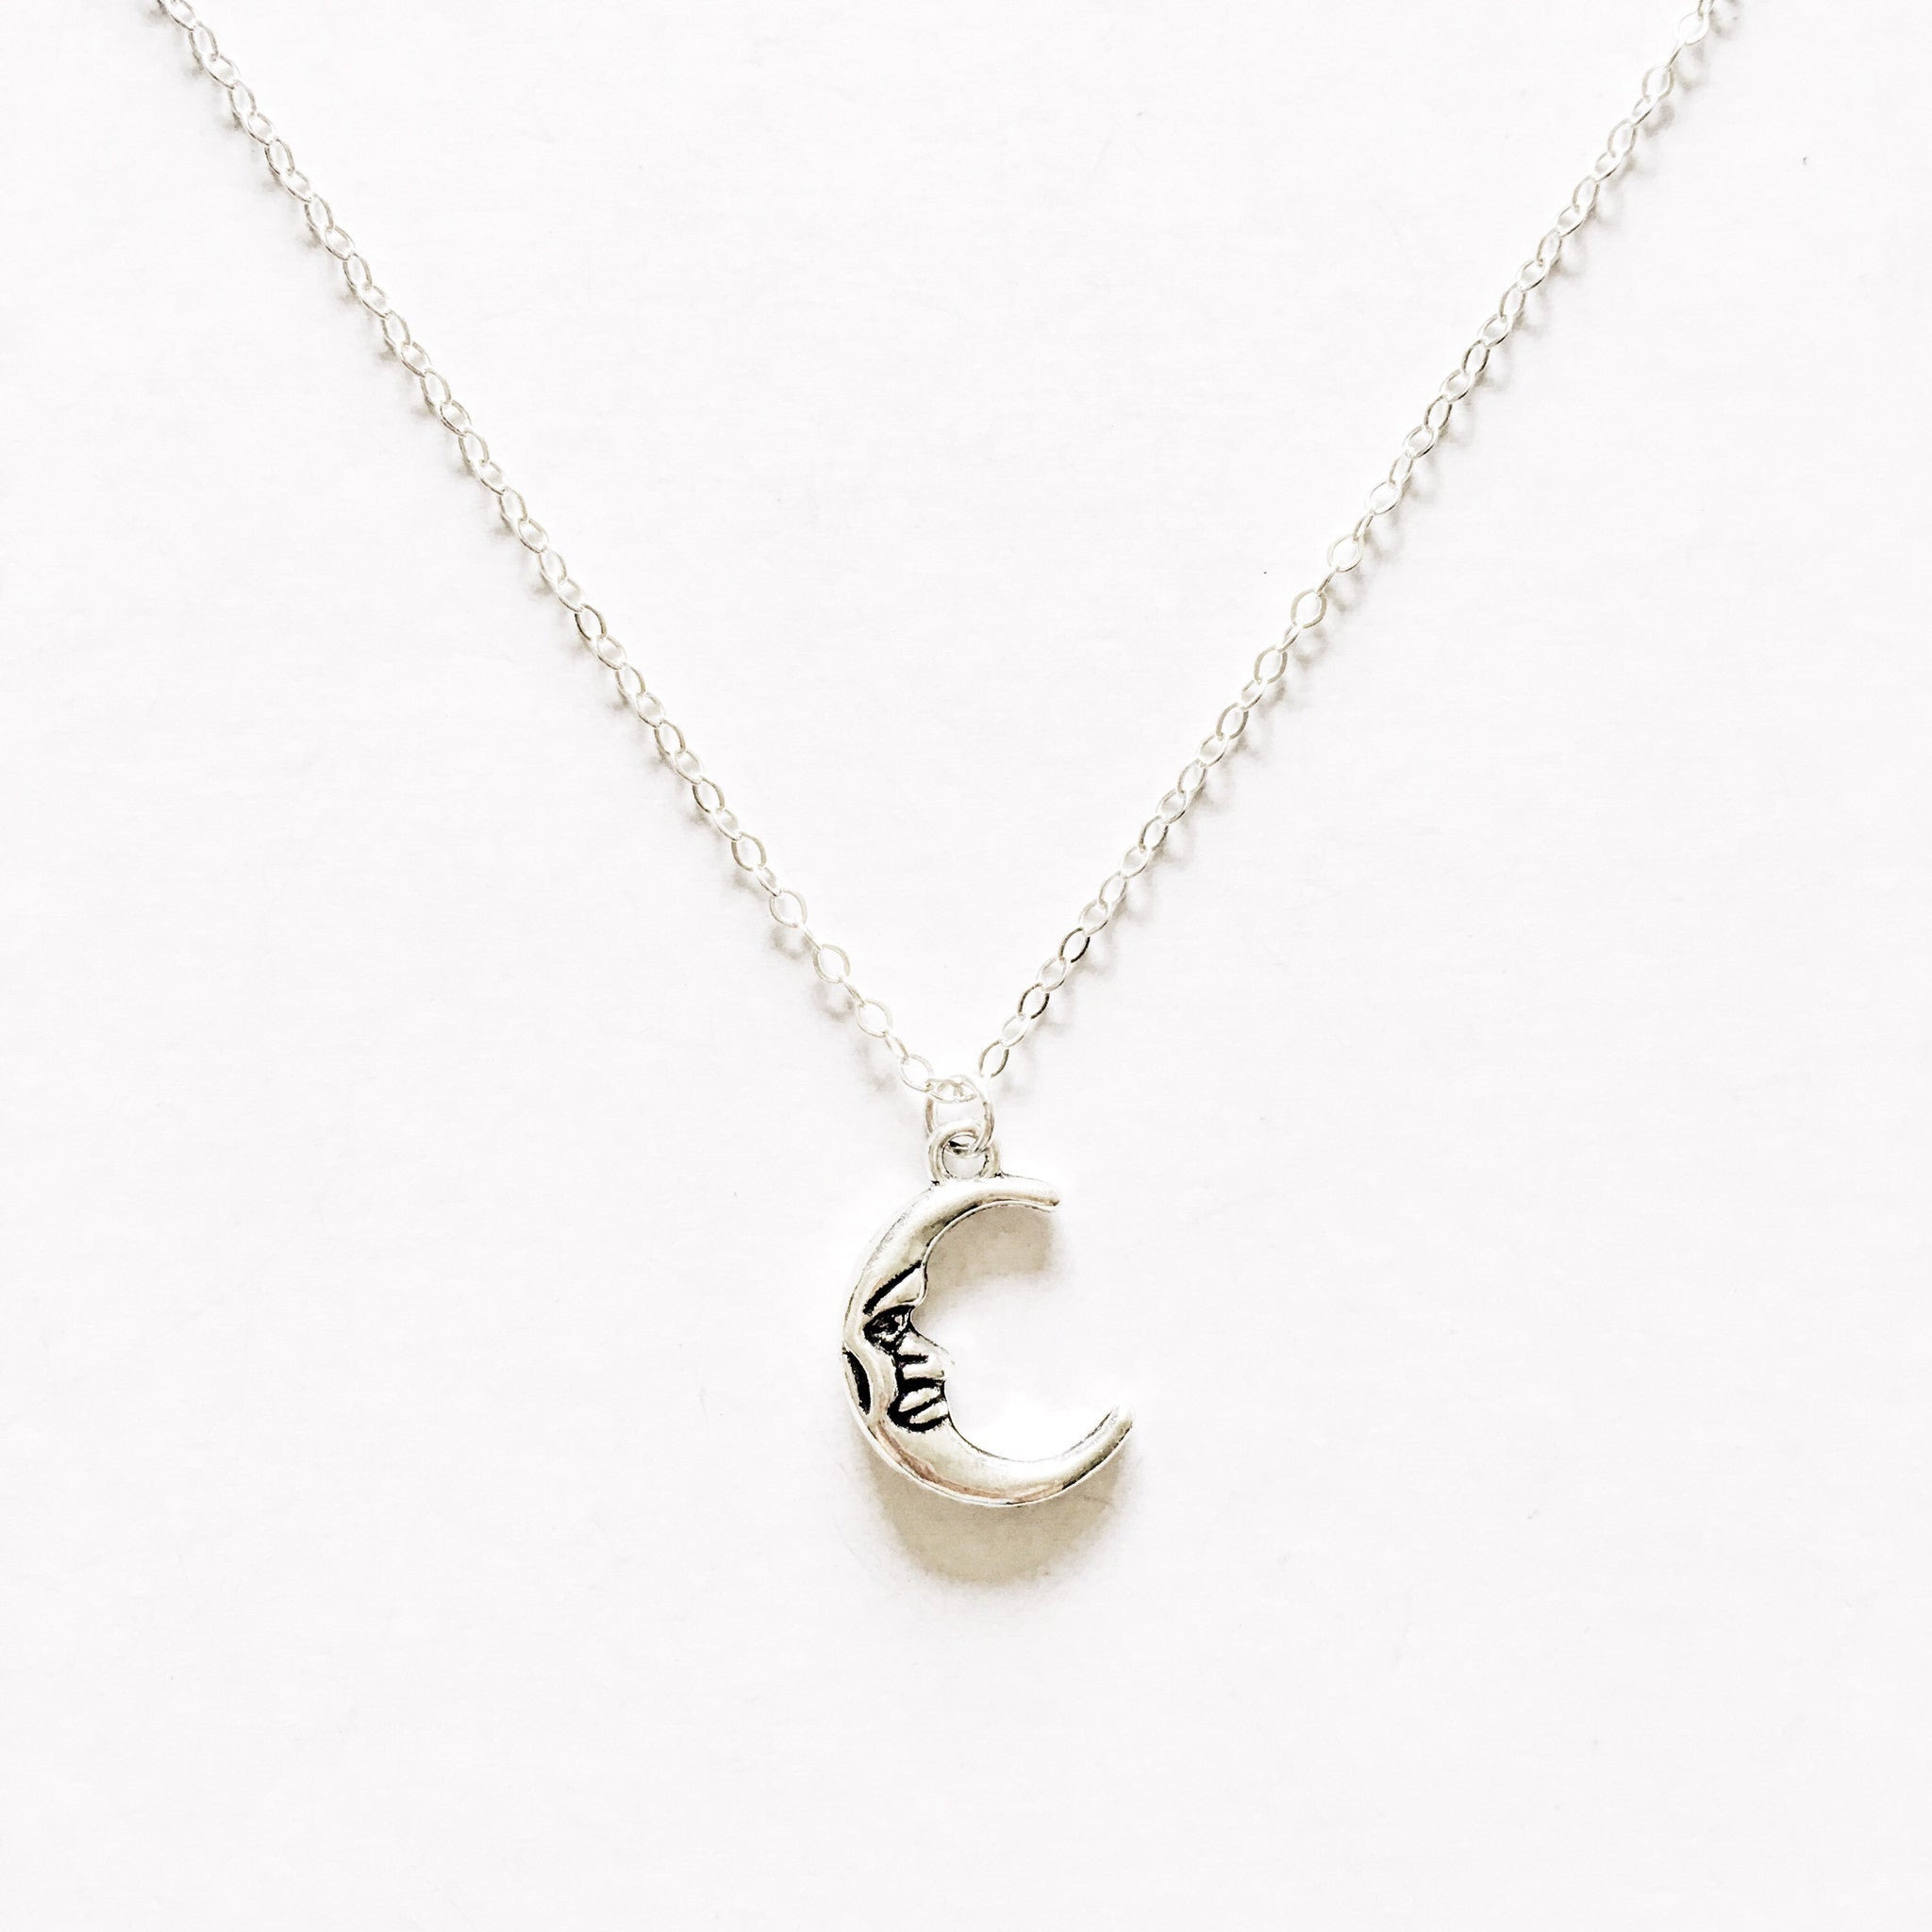 Waning Crescent Necklace